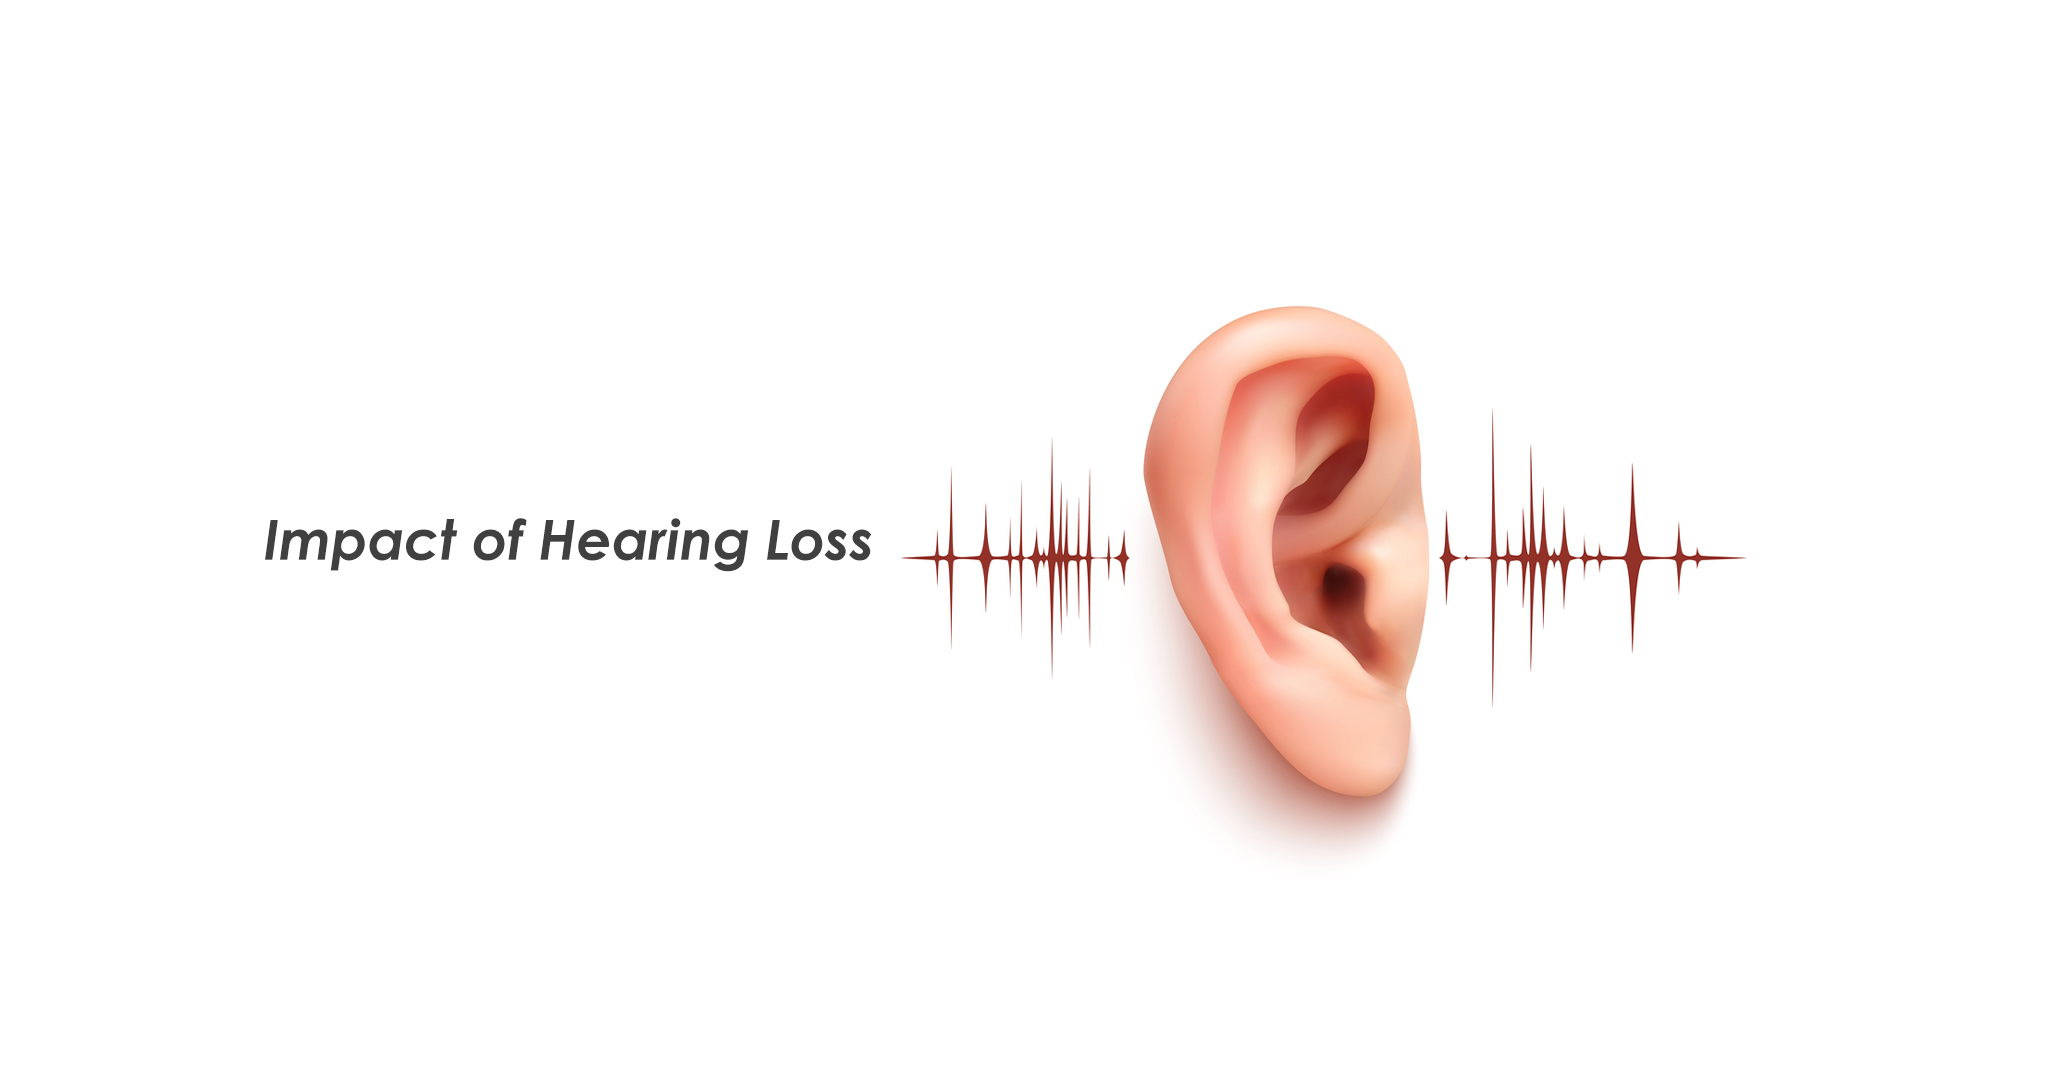 Blog-Entry-12-Hearing Health and The Impact of Hearing Loss